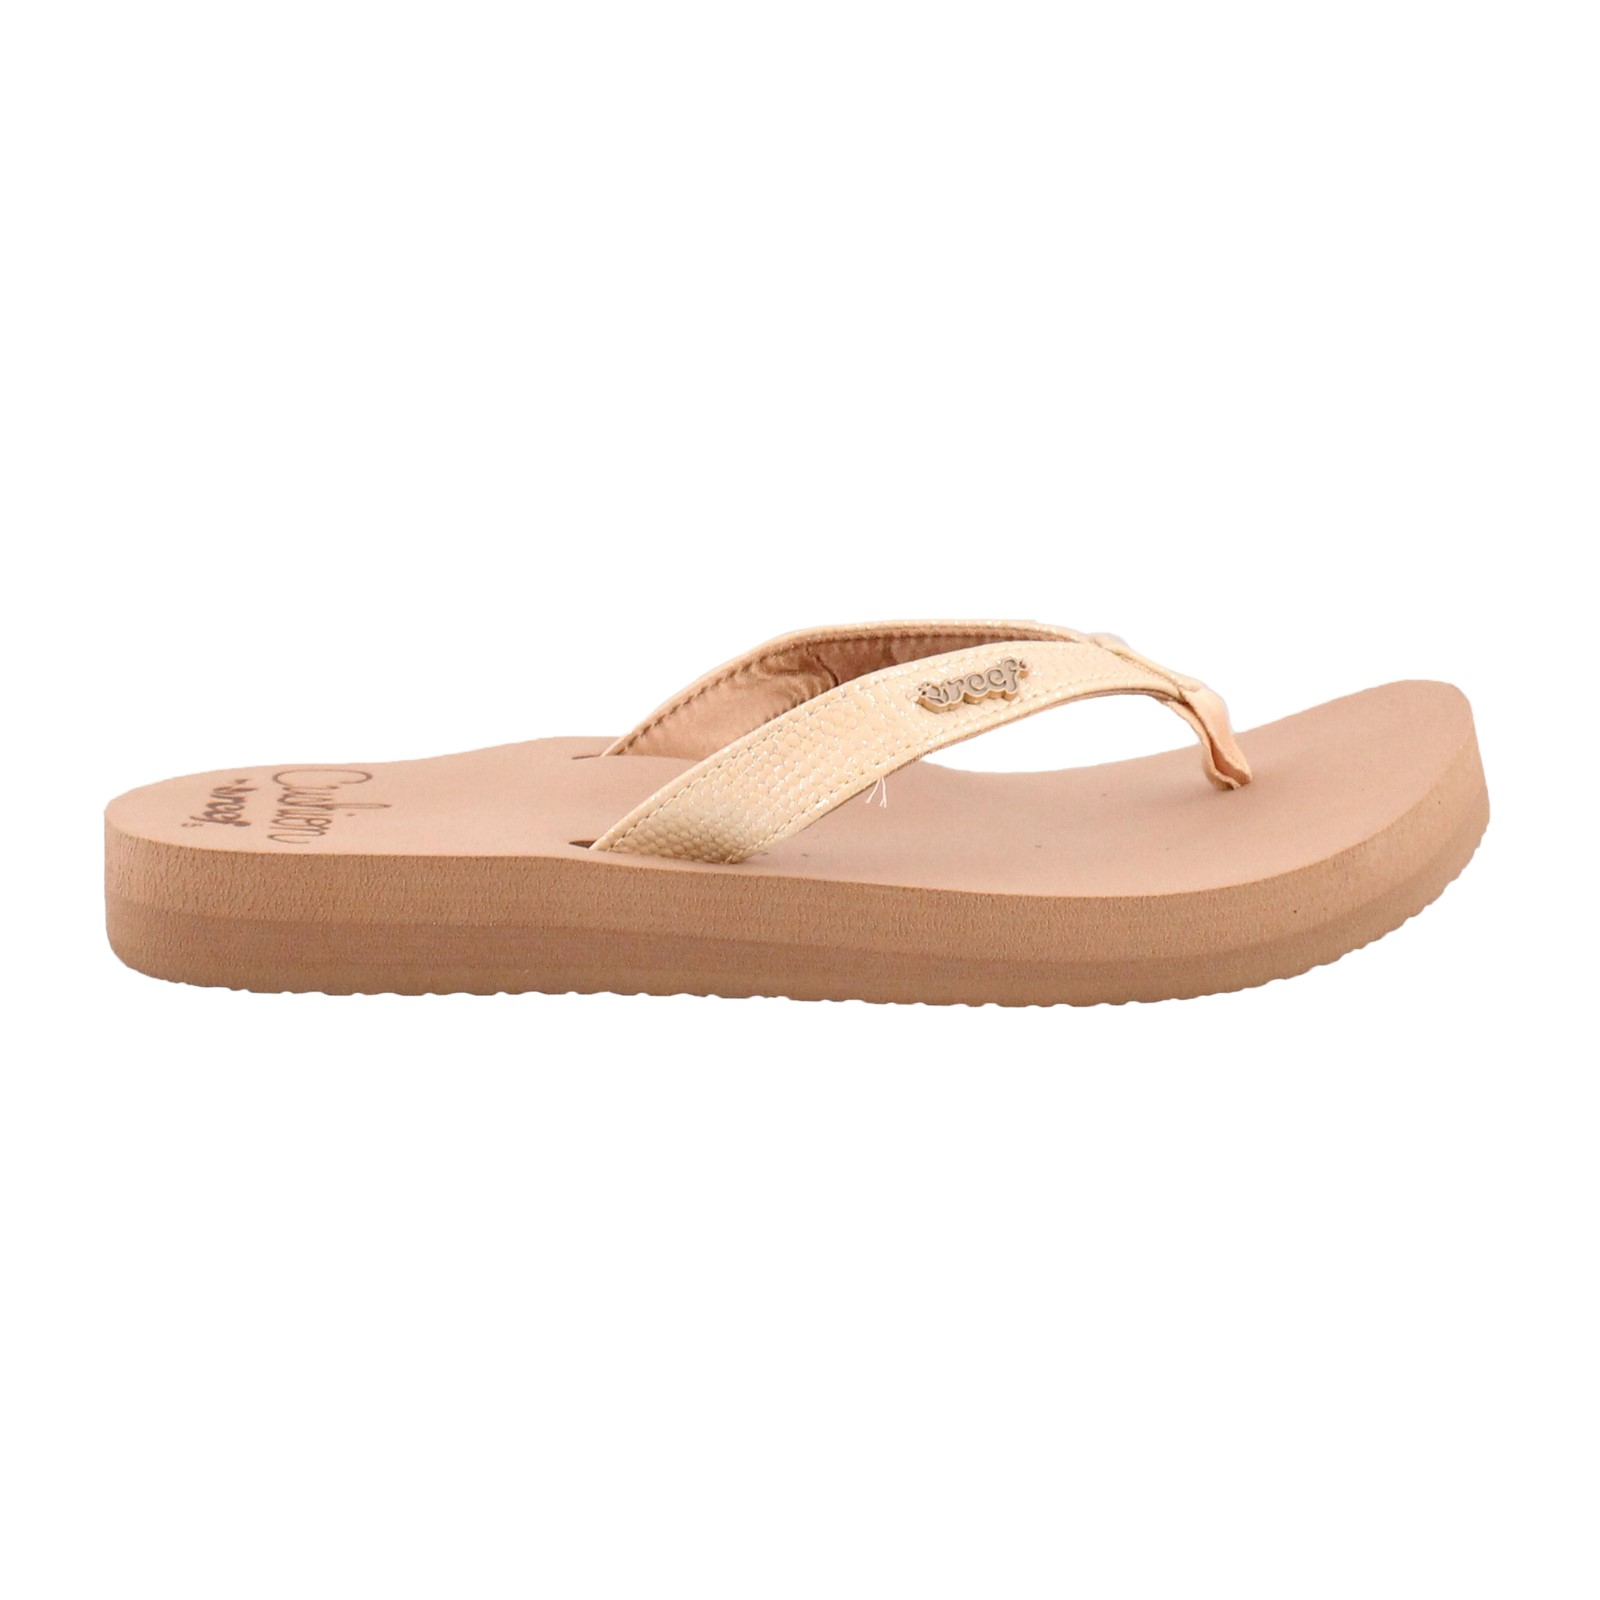 Women's Reef, Star Cushioned Thong Sandals